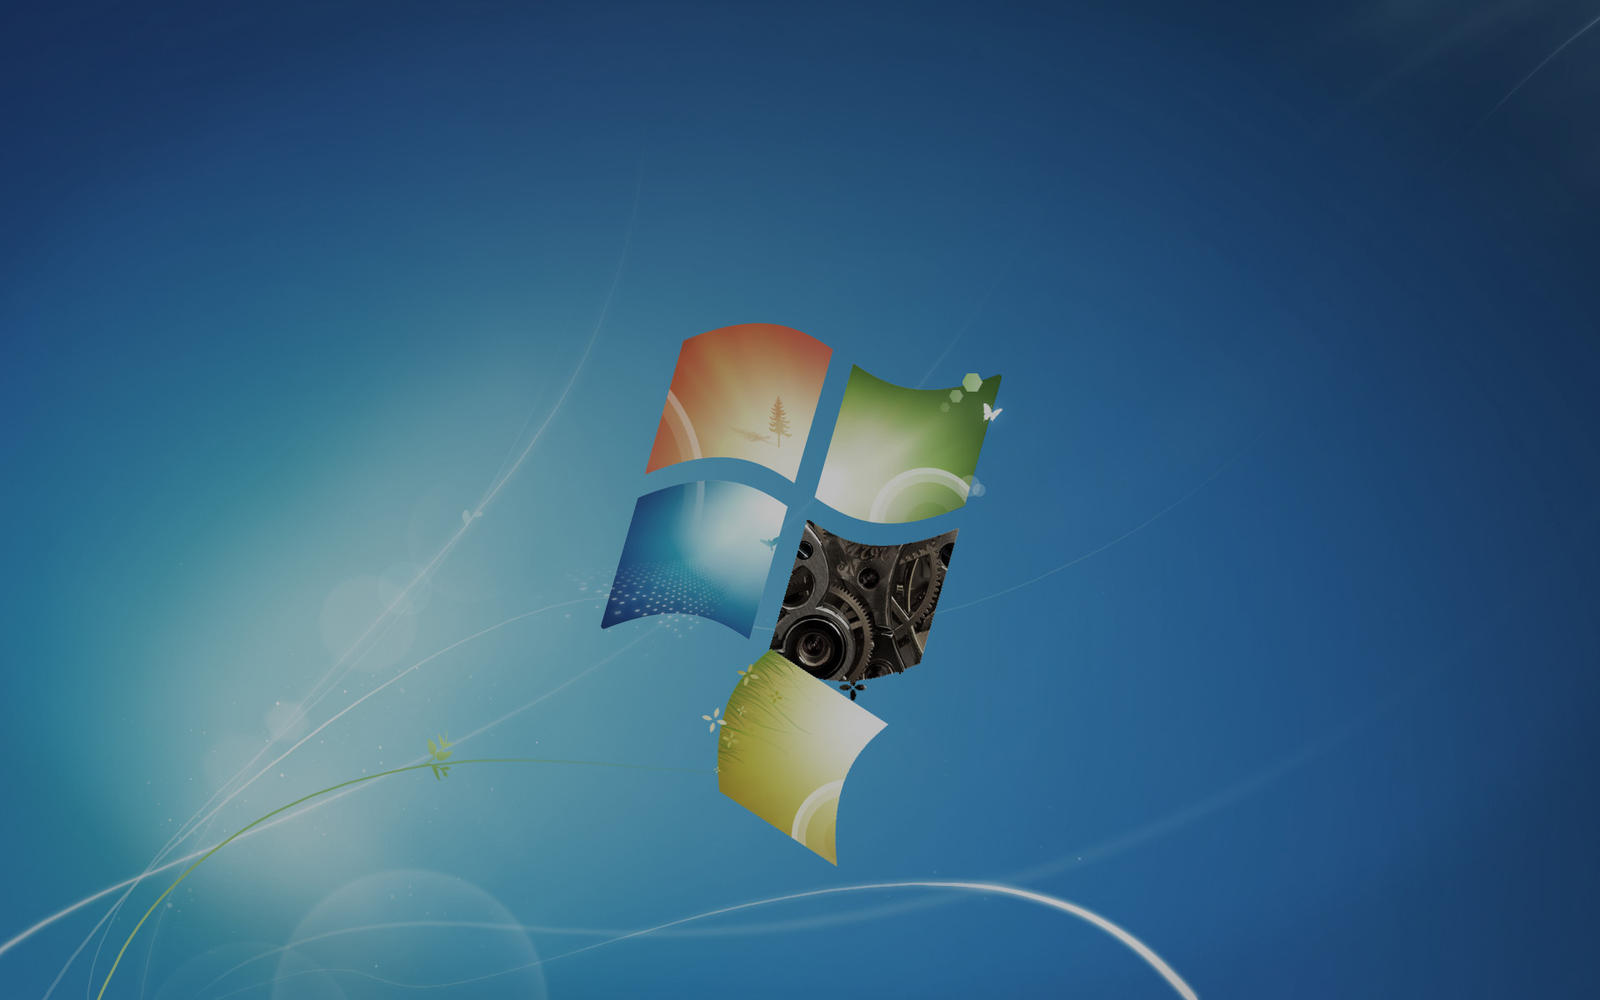 (Badly) Aged Windows 7 Default Wallpaper By Derpy-Sheen On